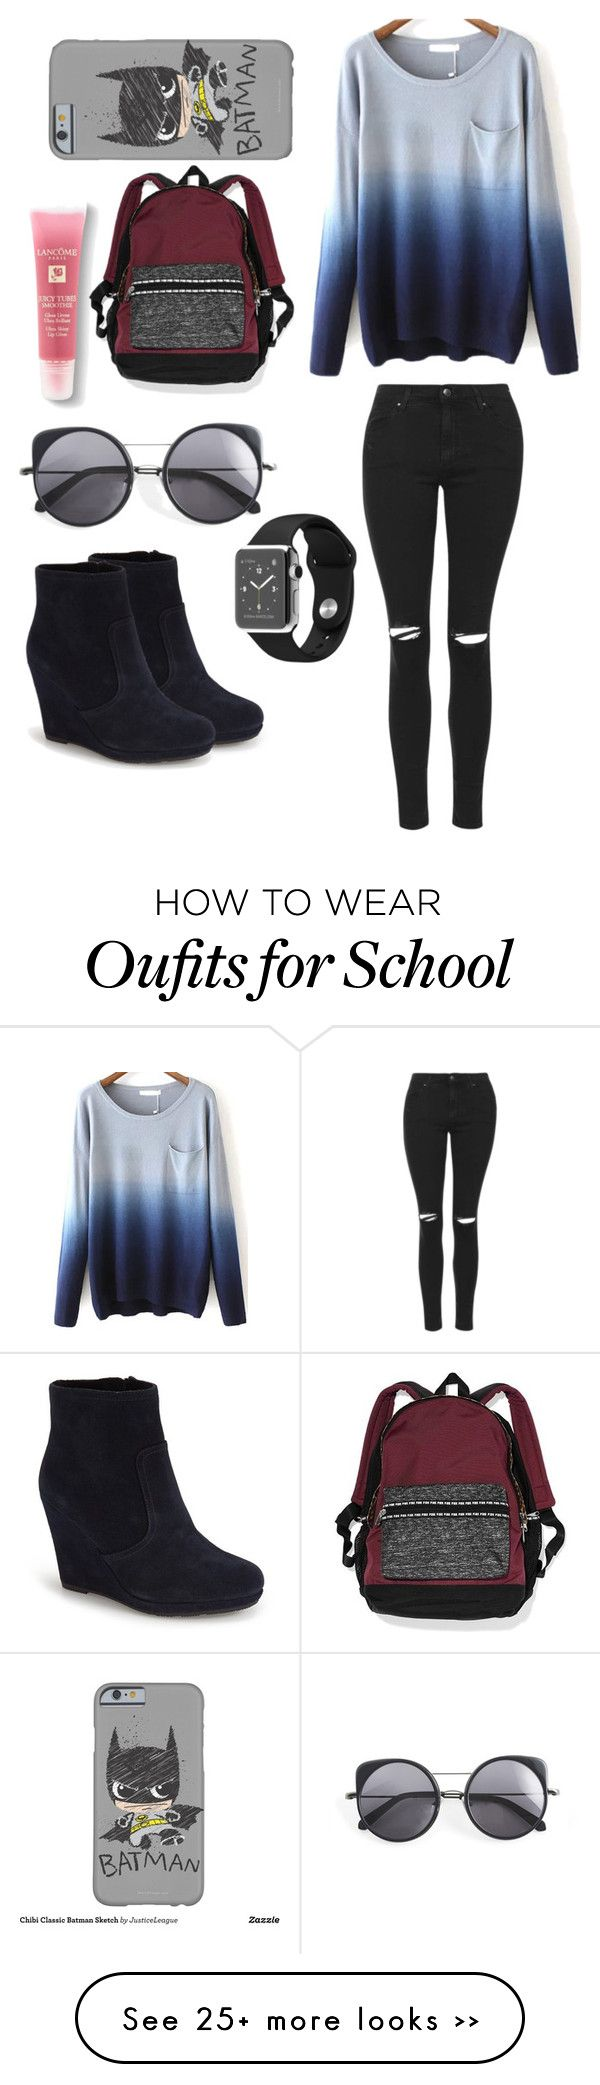 """school :)"" by melody57 on Polyvore featuring Topshop, Vince Camuto, Wood Wood, Lancôme and Victoria's Secret"